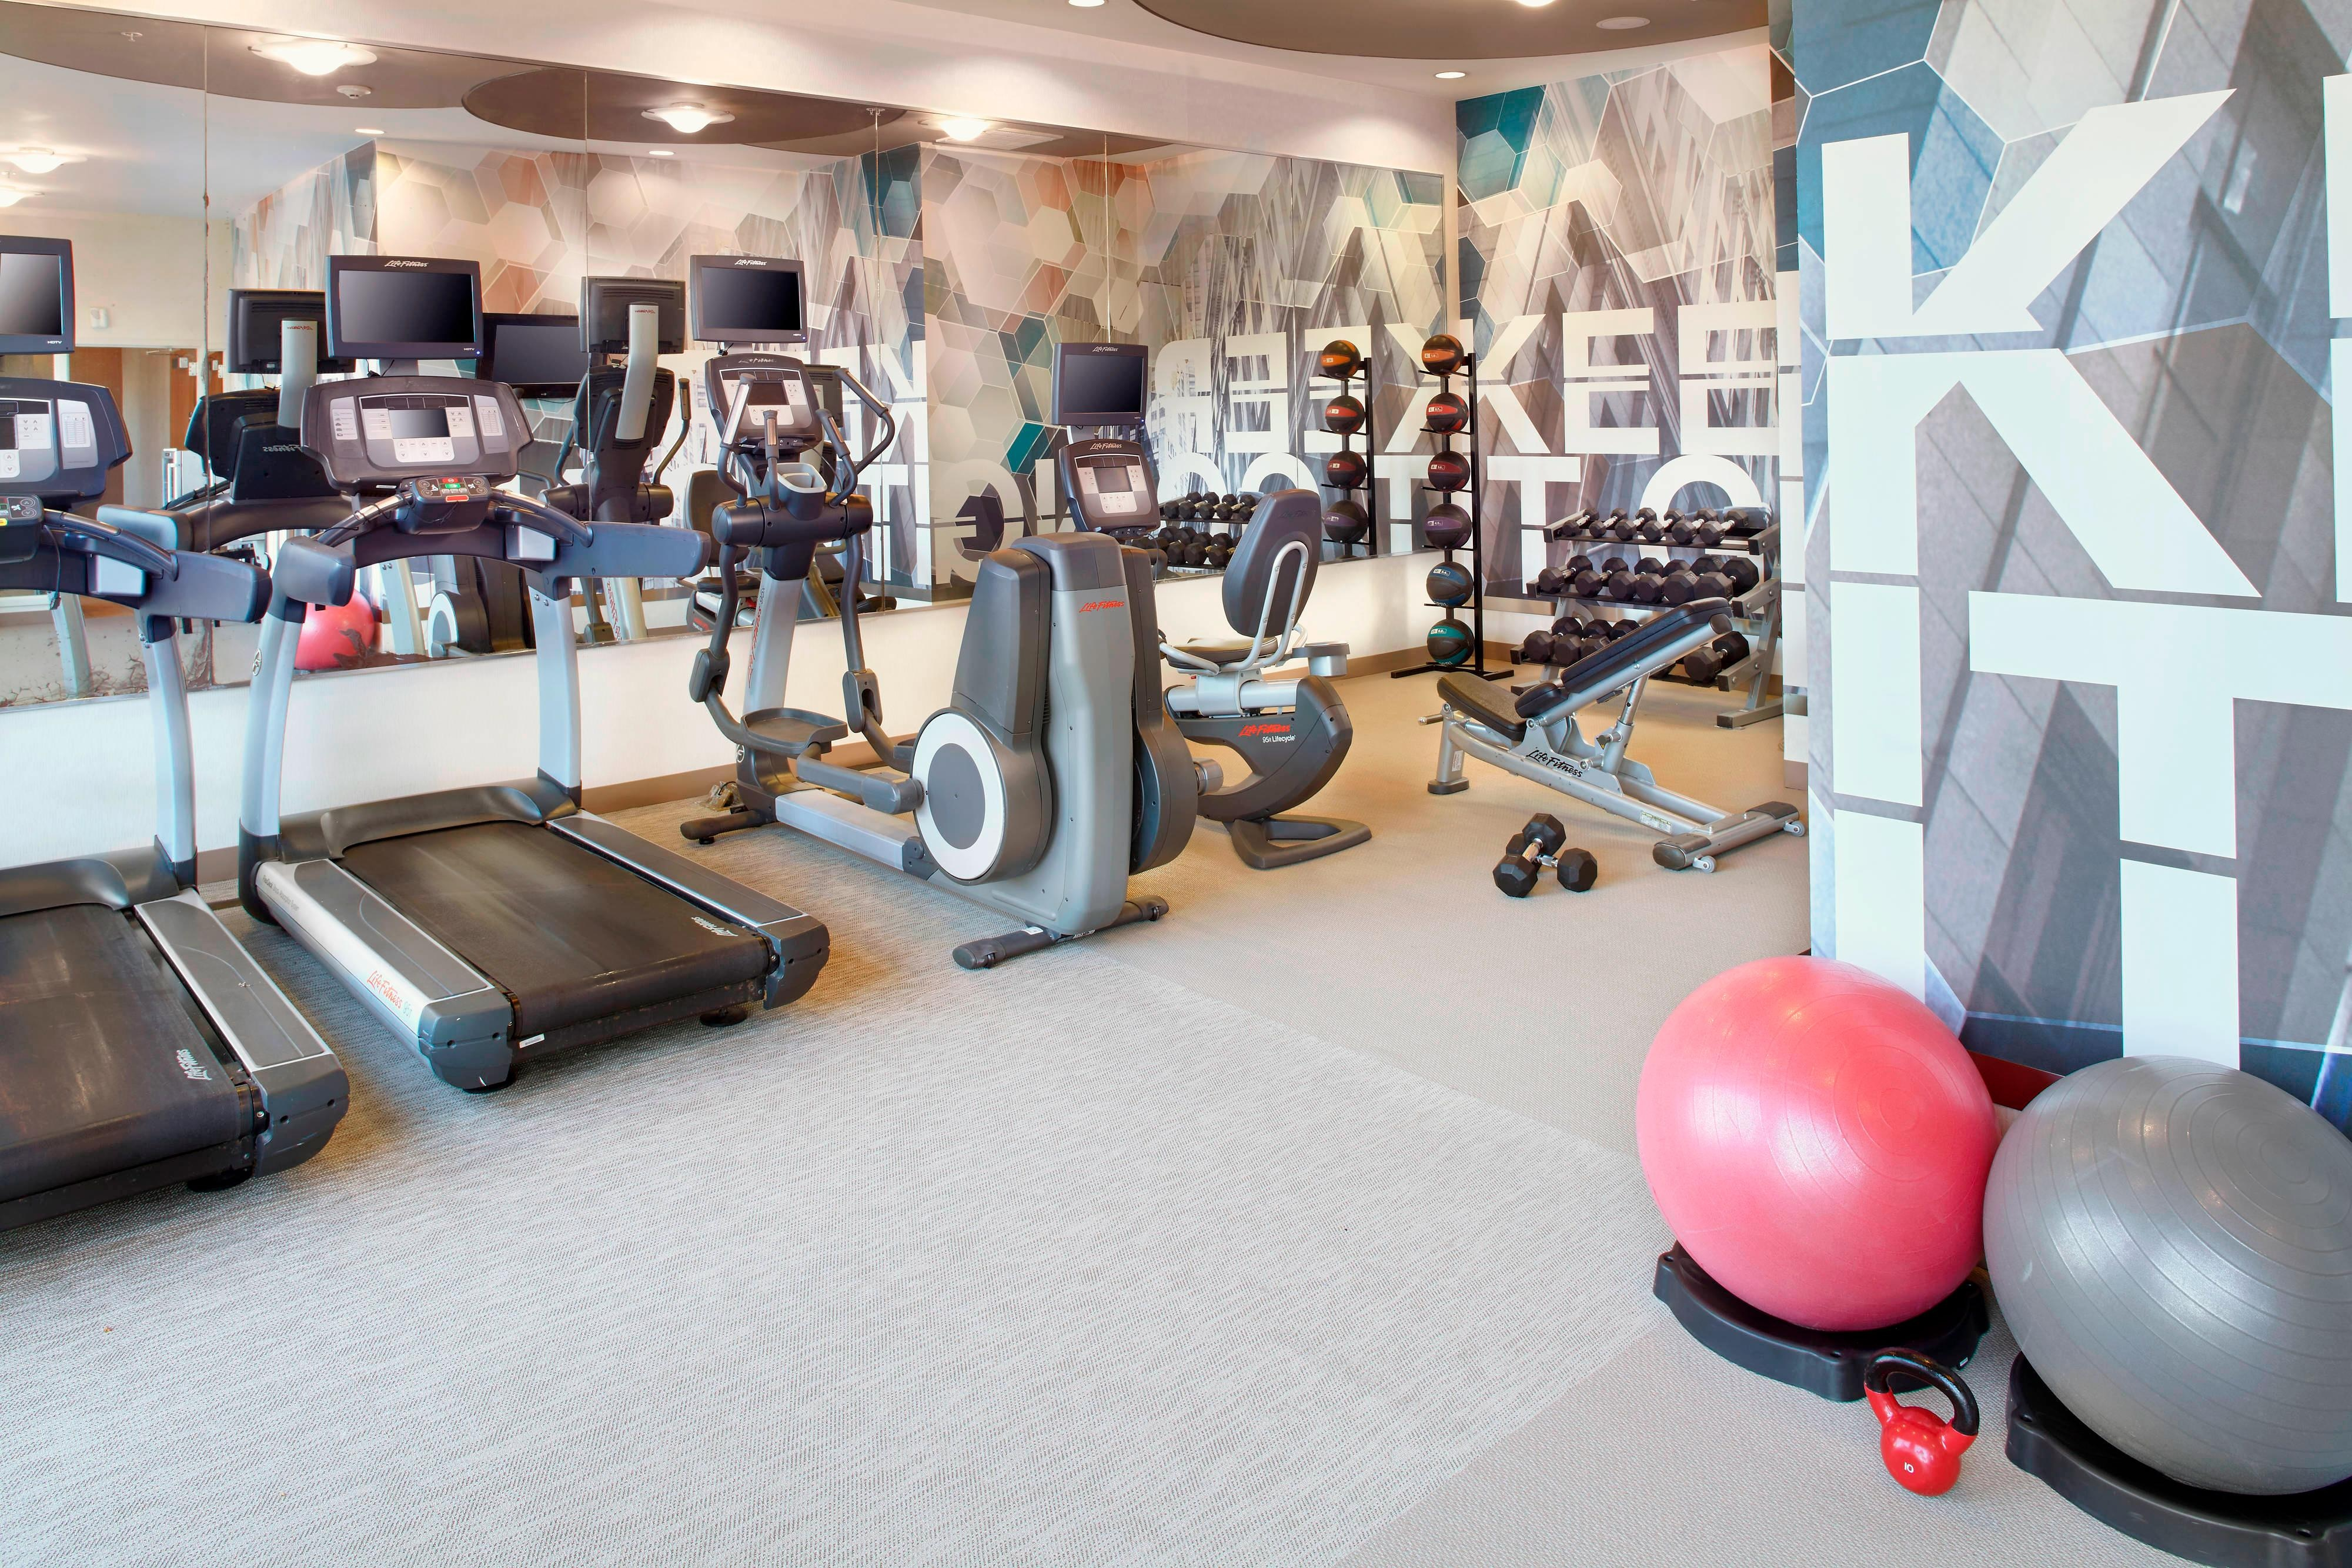 Houston Airport Hotel Fitness Center